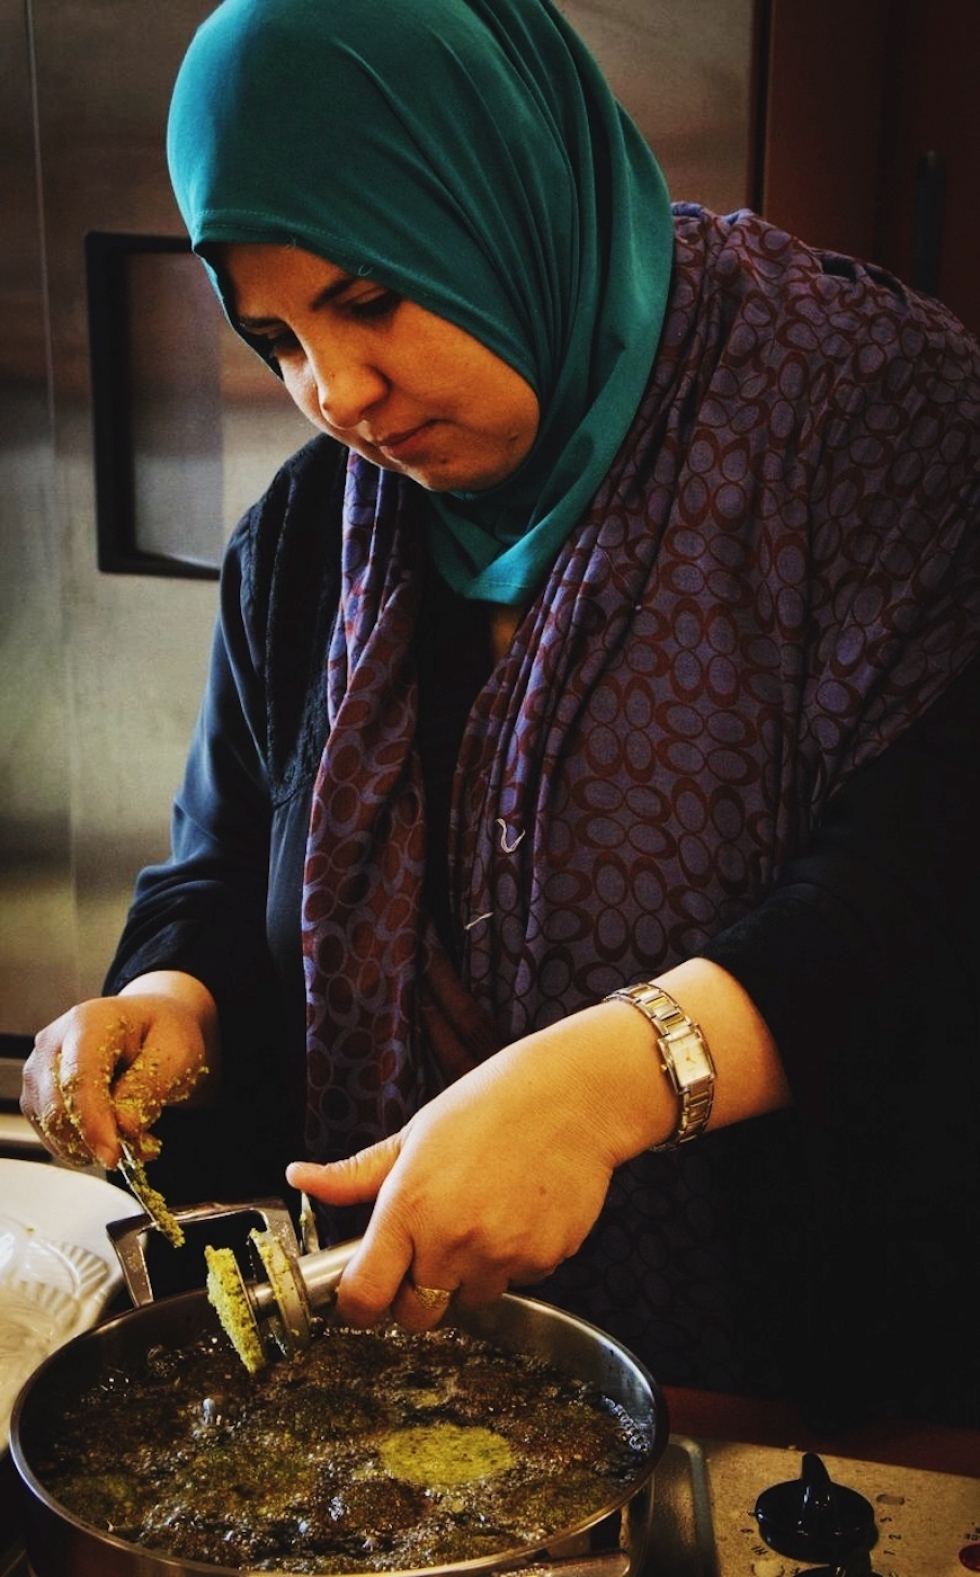 """An Iraqi woman drops a falafel croquette into hot oil for frying."" – from ""Savor – Stories of Community, Culture, and Food,"" page 26."